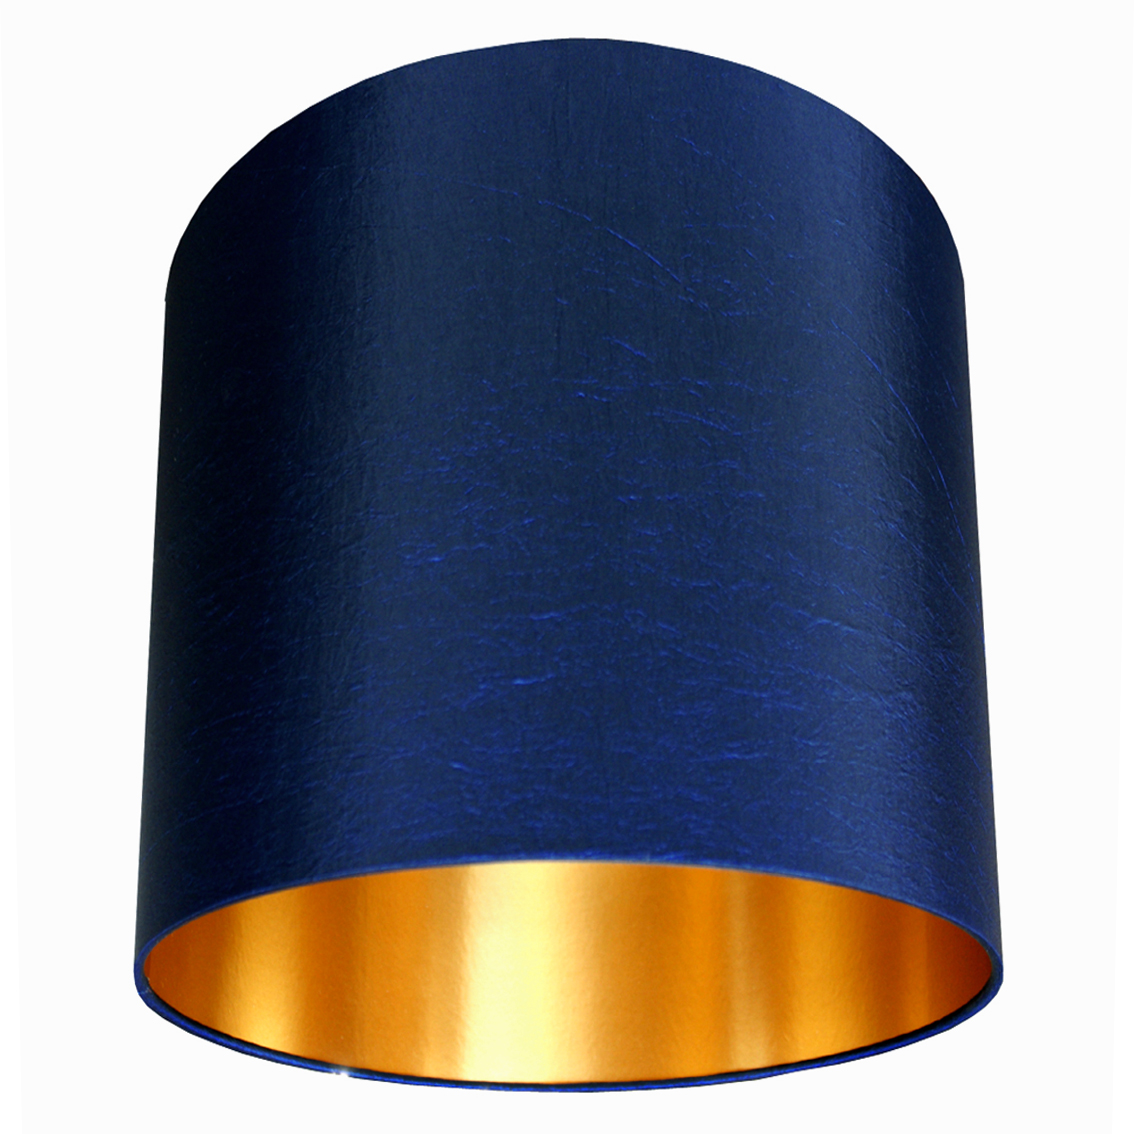 Lampshade Proportion Guide Midnight Blue And Gold